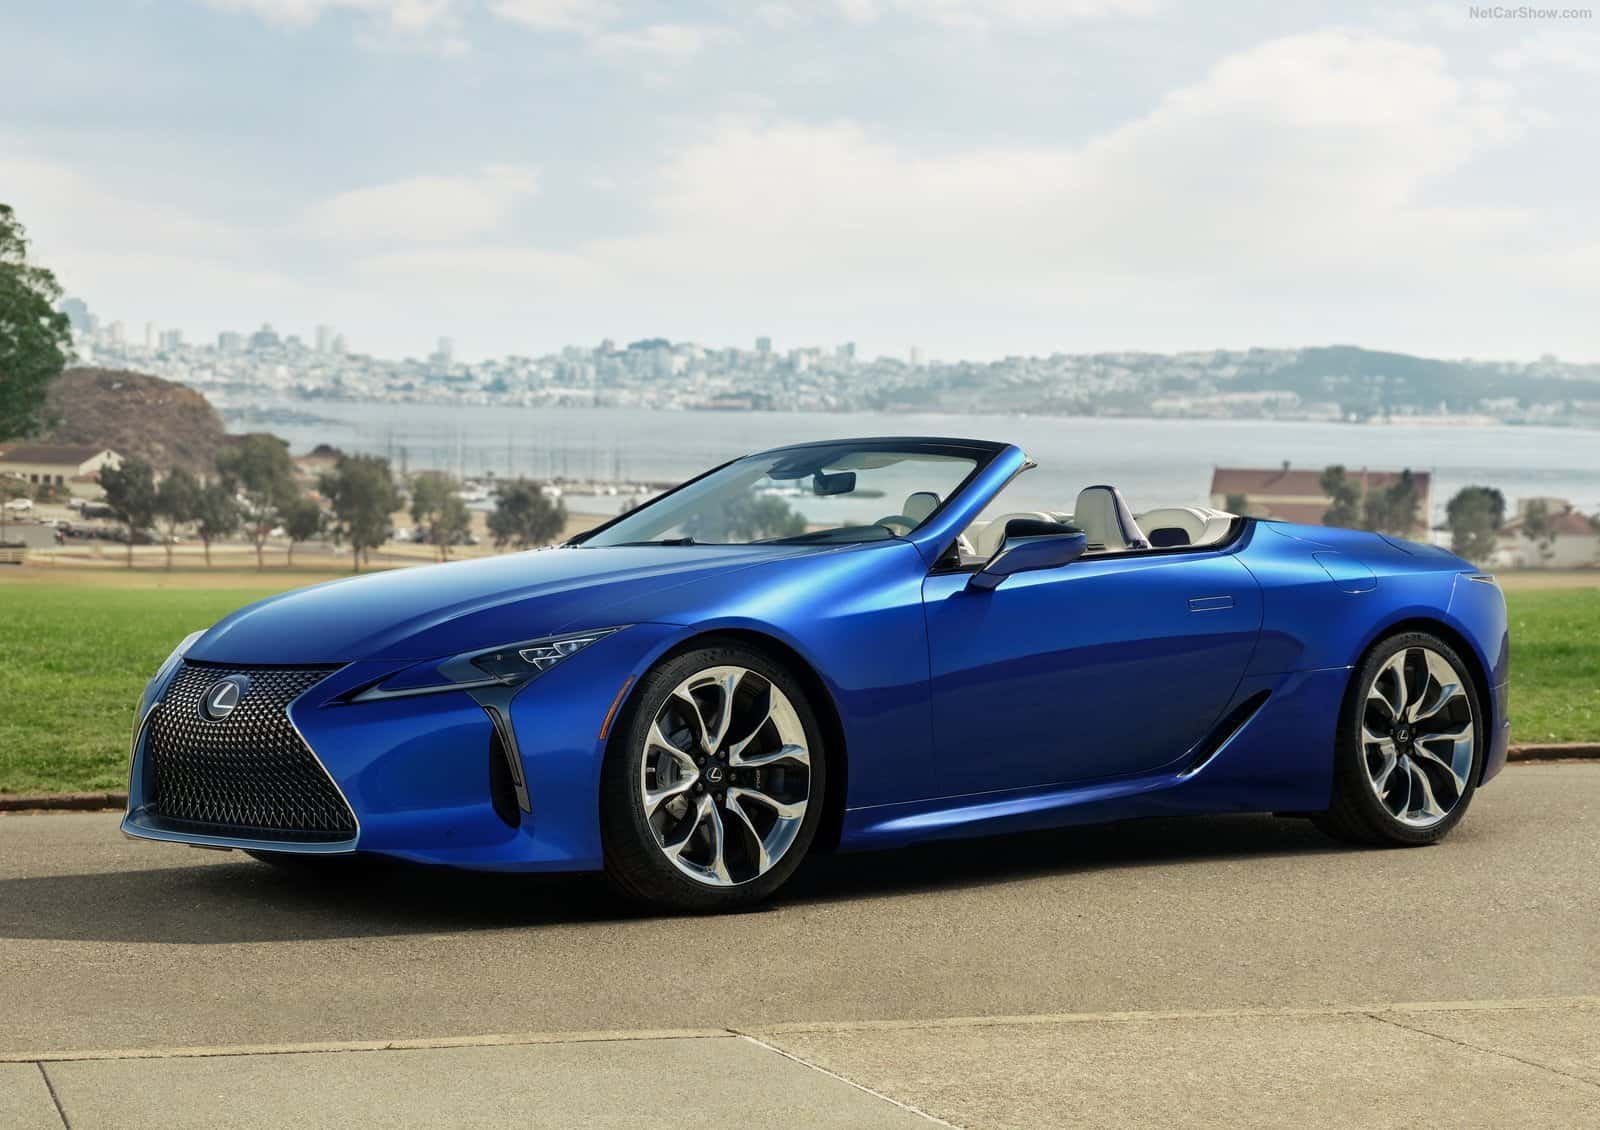 LC500 Front View